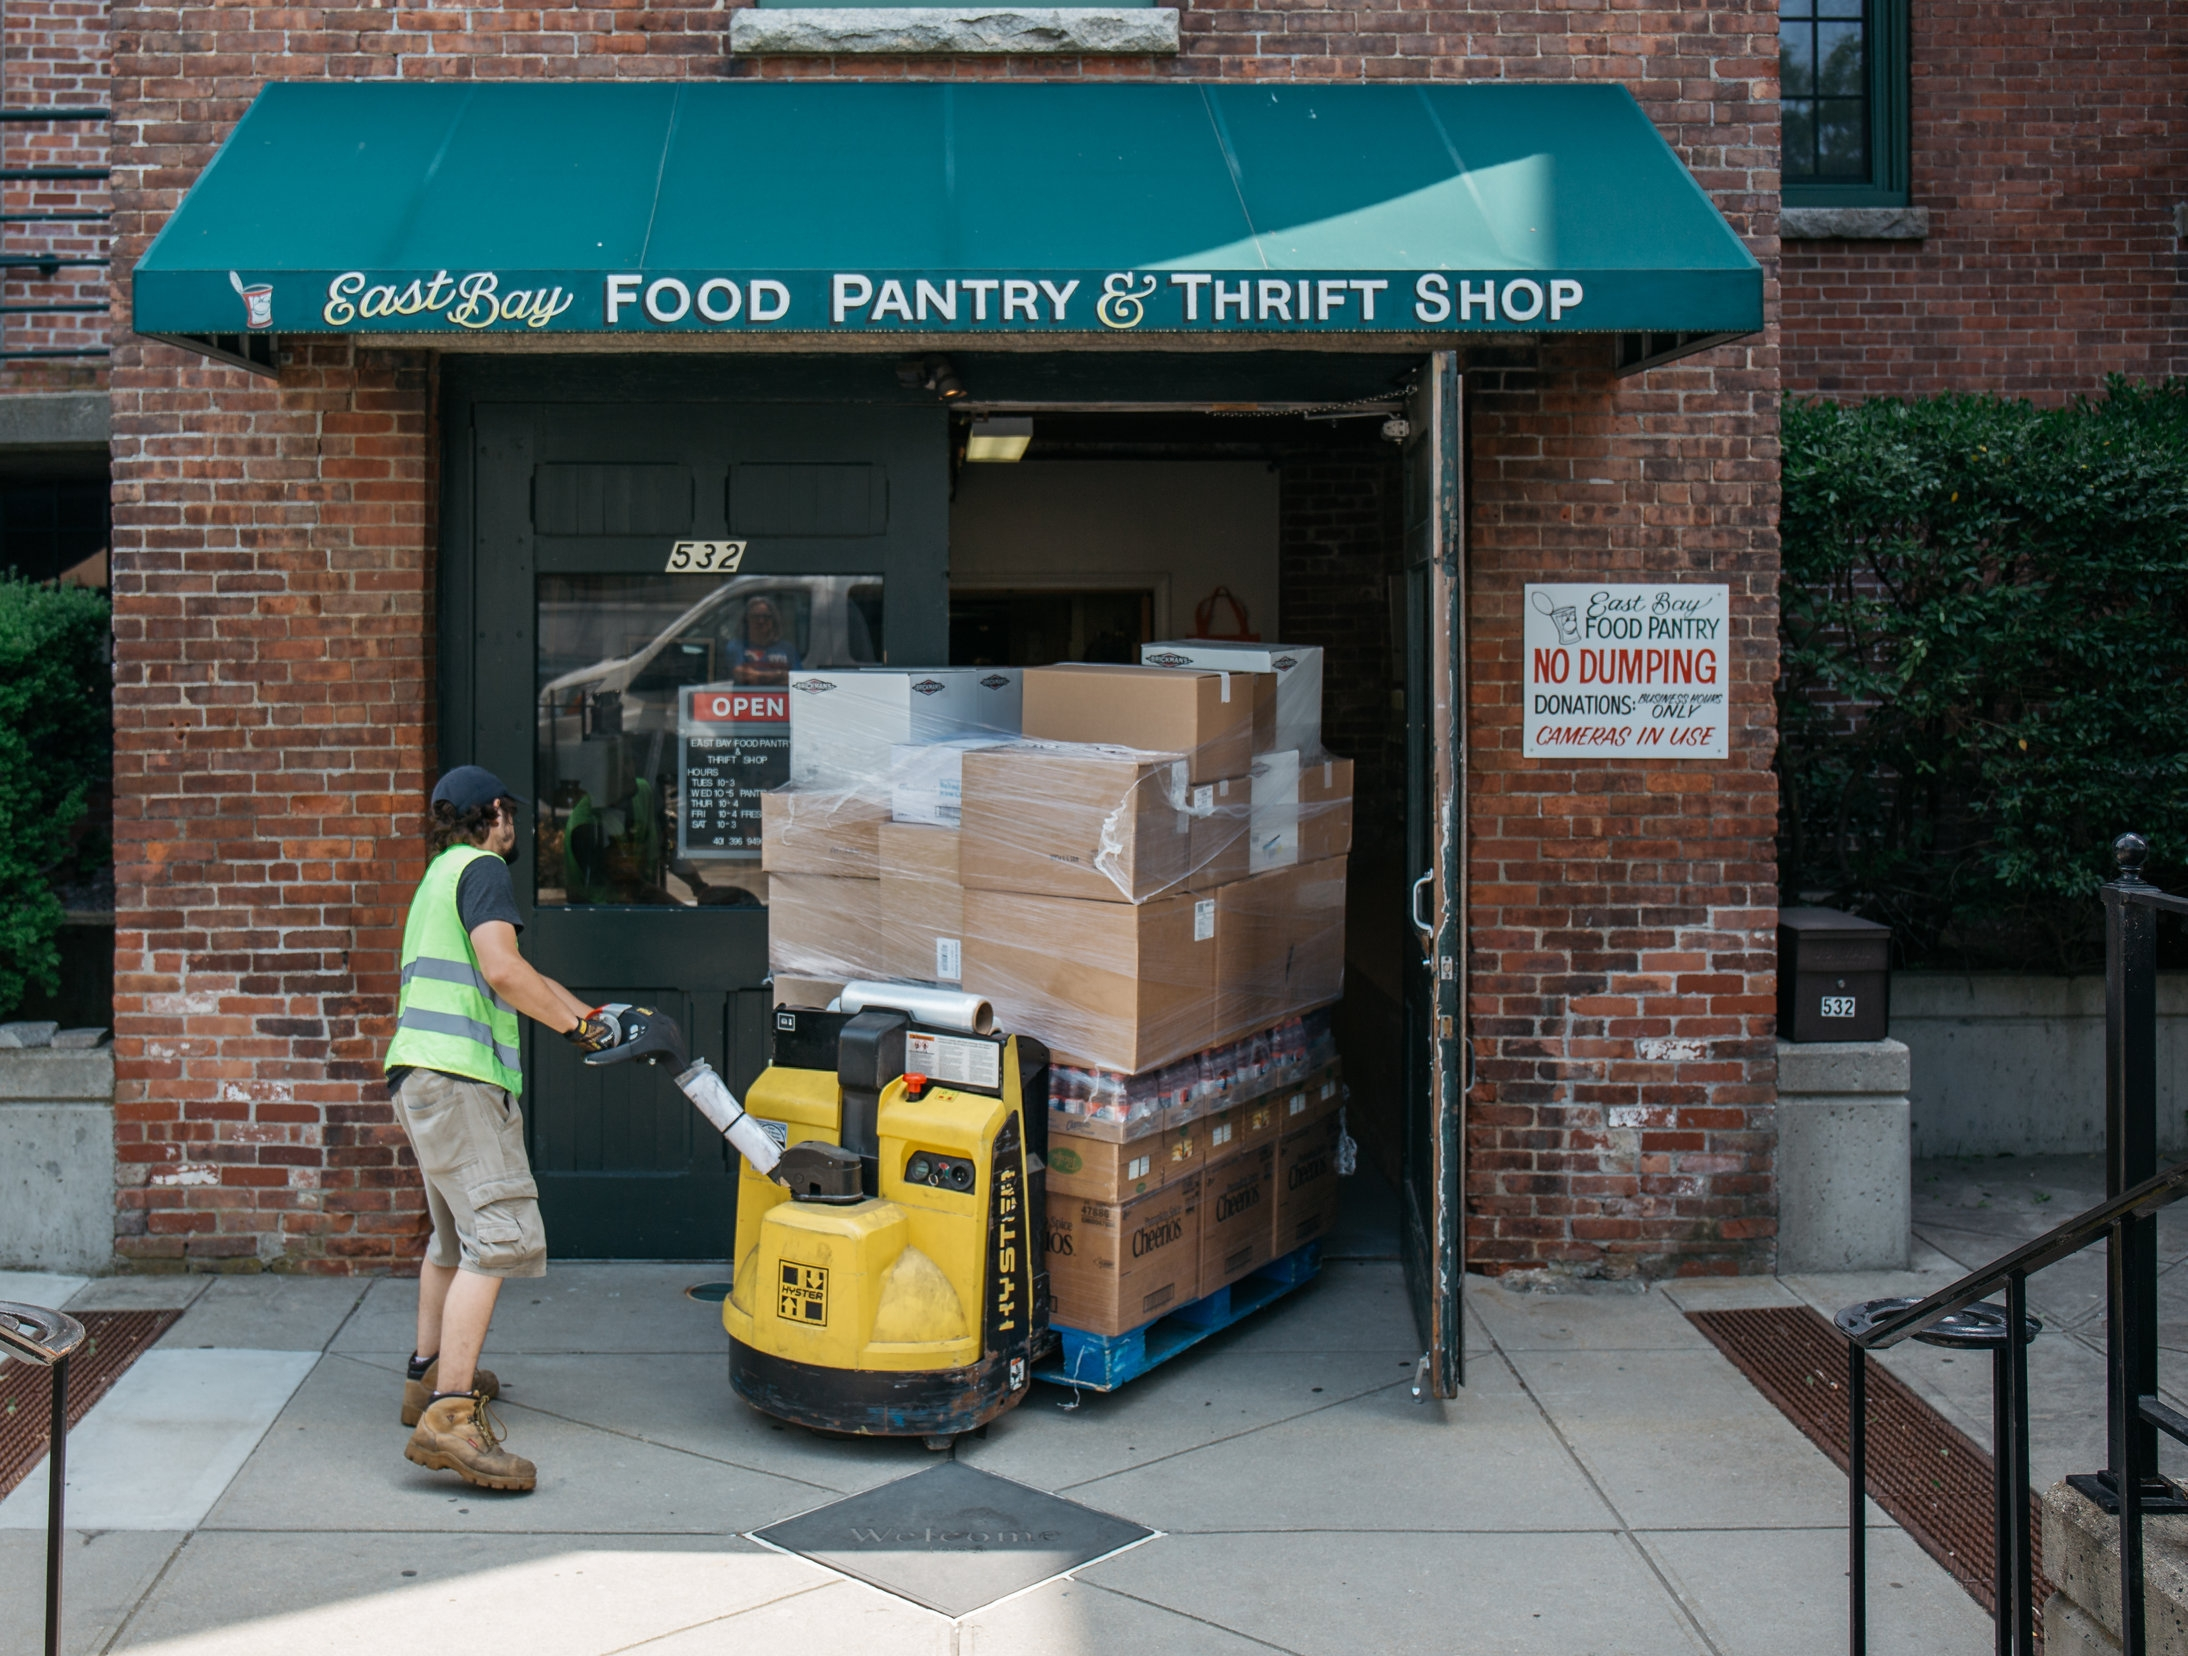 Our Mission - Our Mission is simple: We share what we have been given to those in need.Learn More